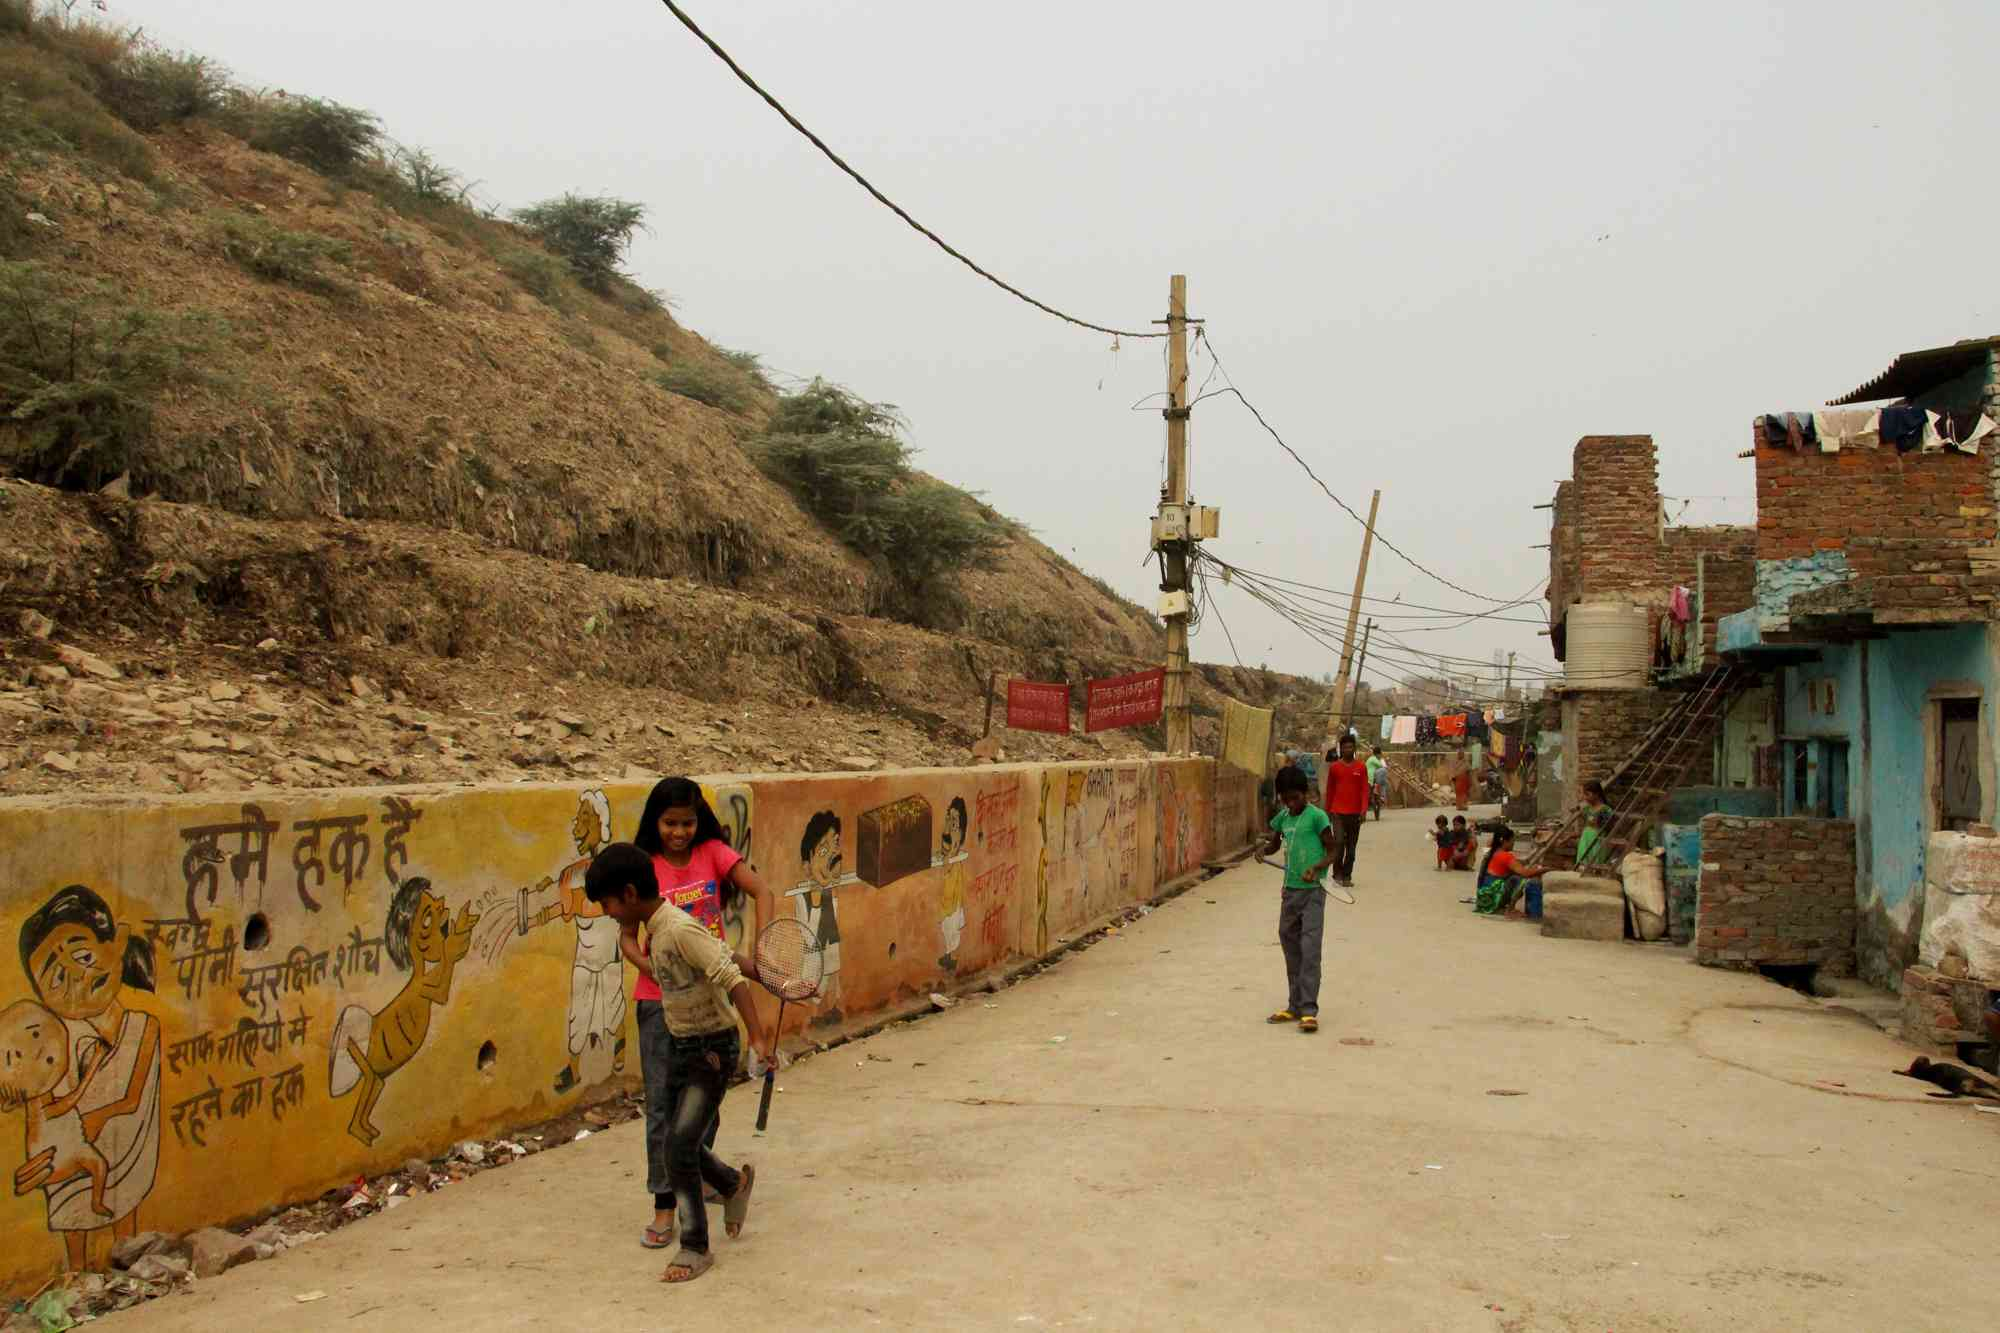 Children play in the lanes below the landfill.